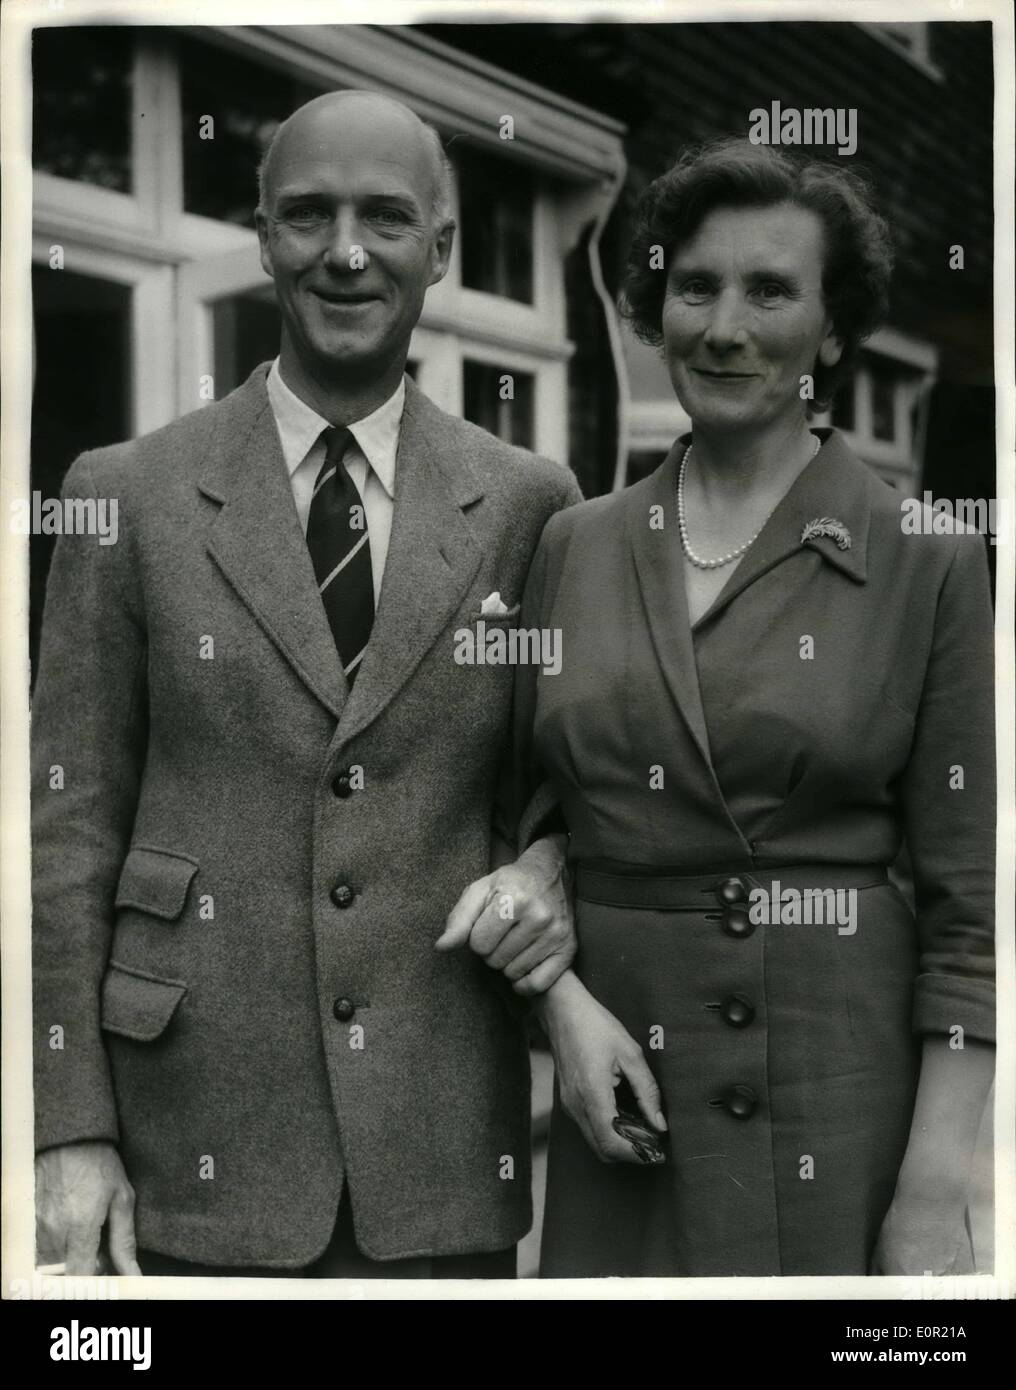 Sep. 09, 1957 - At Home with London's new Lord Mayor: Sir Denis Henry Truscott was elecdted Lord Mayor of London at Quildhall yesterday. he is the third of the family to hold the office, and succeeds Sir Cullum Welcjh. Sir Denis, who is 49, ans was married in 1932, has four daughters, and lives at Wimbledon. he is keen musician and became a member of the Musician's Company when only 18. In August 1955 he was appointed the new Master of the Vintners Company. he is head of a City printing firm founded in 1824 by his great-grand-father - Stock Image